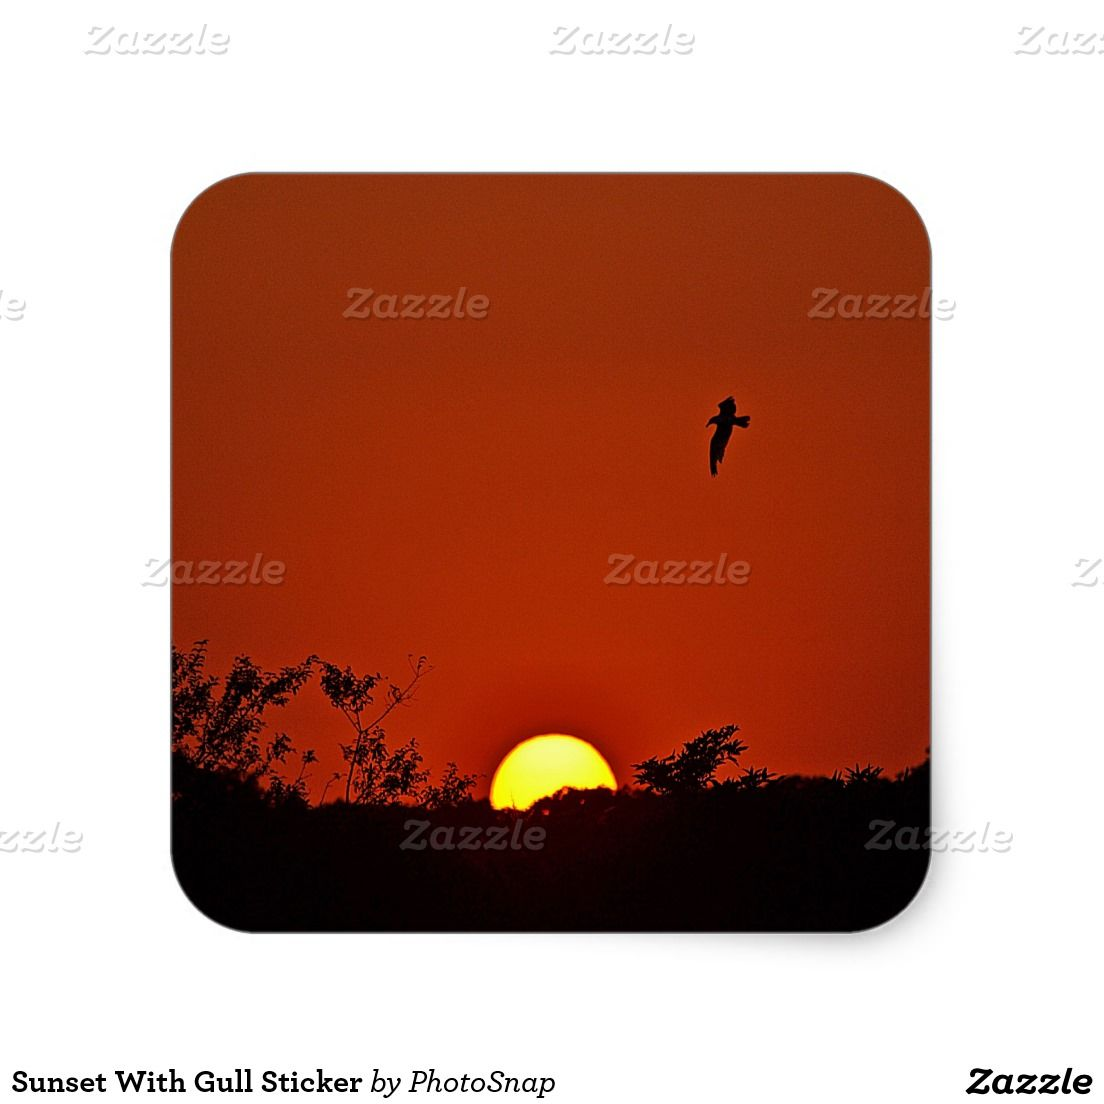 Sunset With Gull Sticker